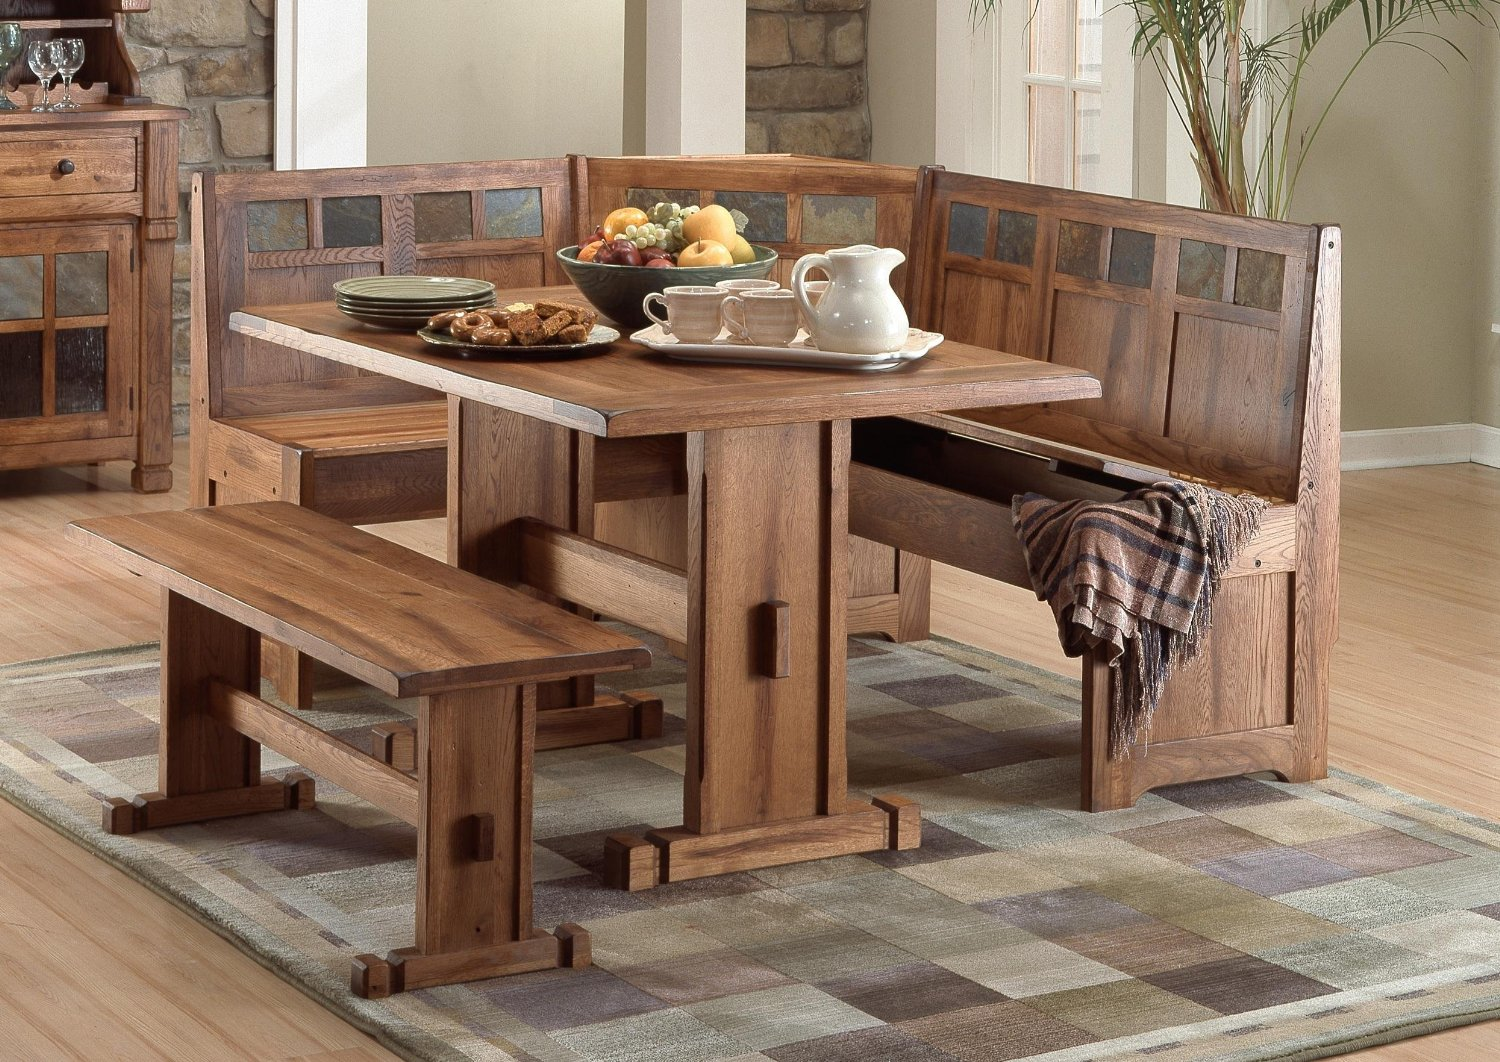 Kitchen tables with benches Photo - 1